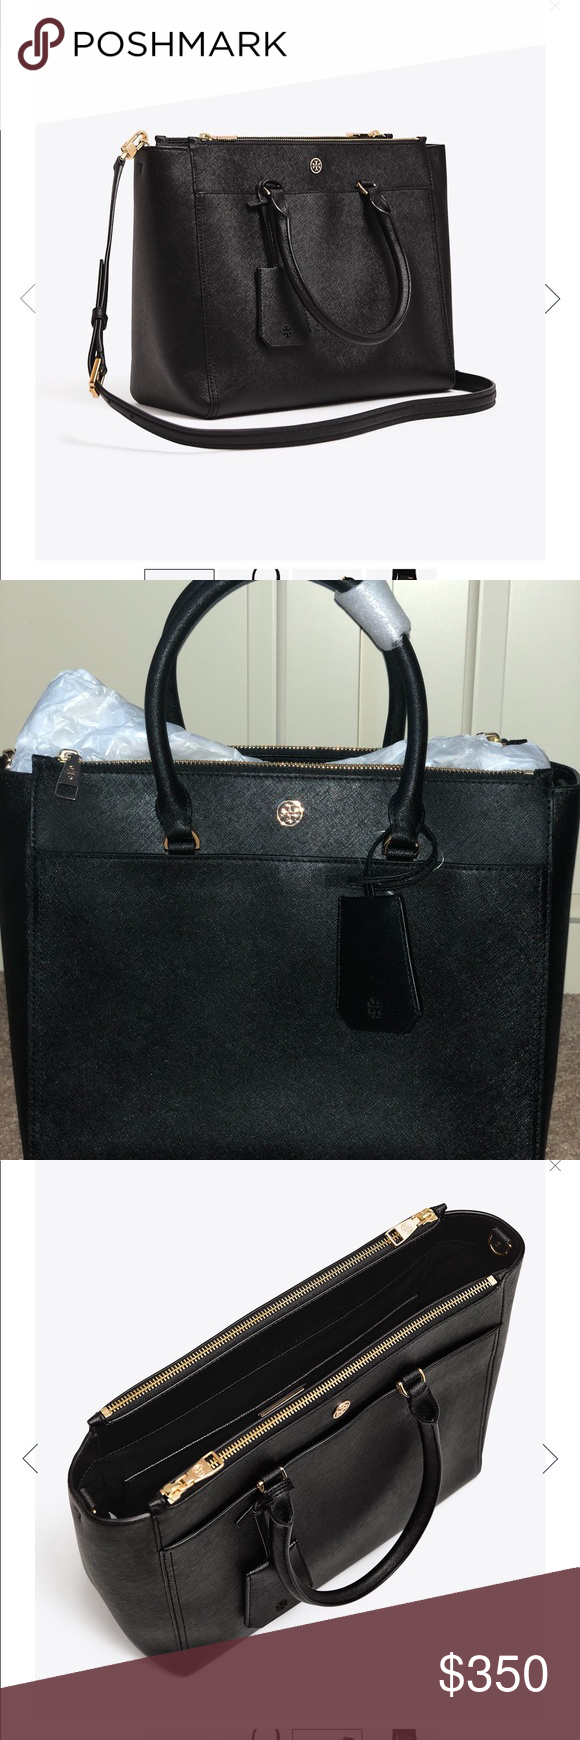 4b820b743c3c NWT Tory Burch Robinson Double ZIP Tote Black Brand new with tag ...